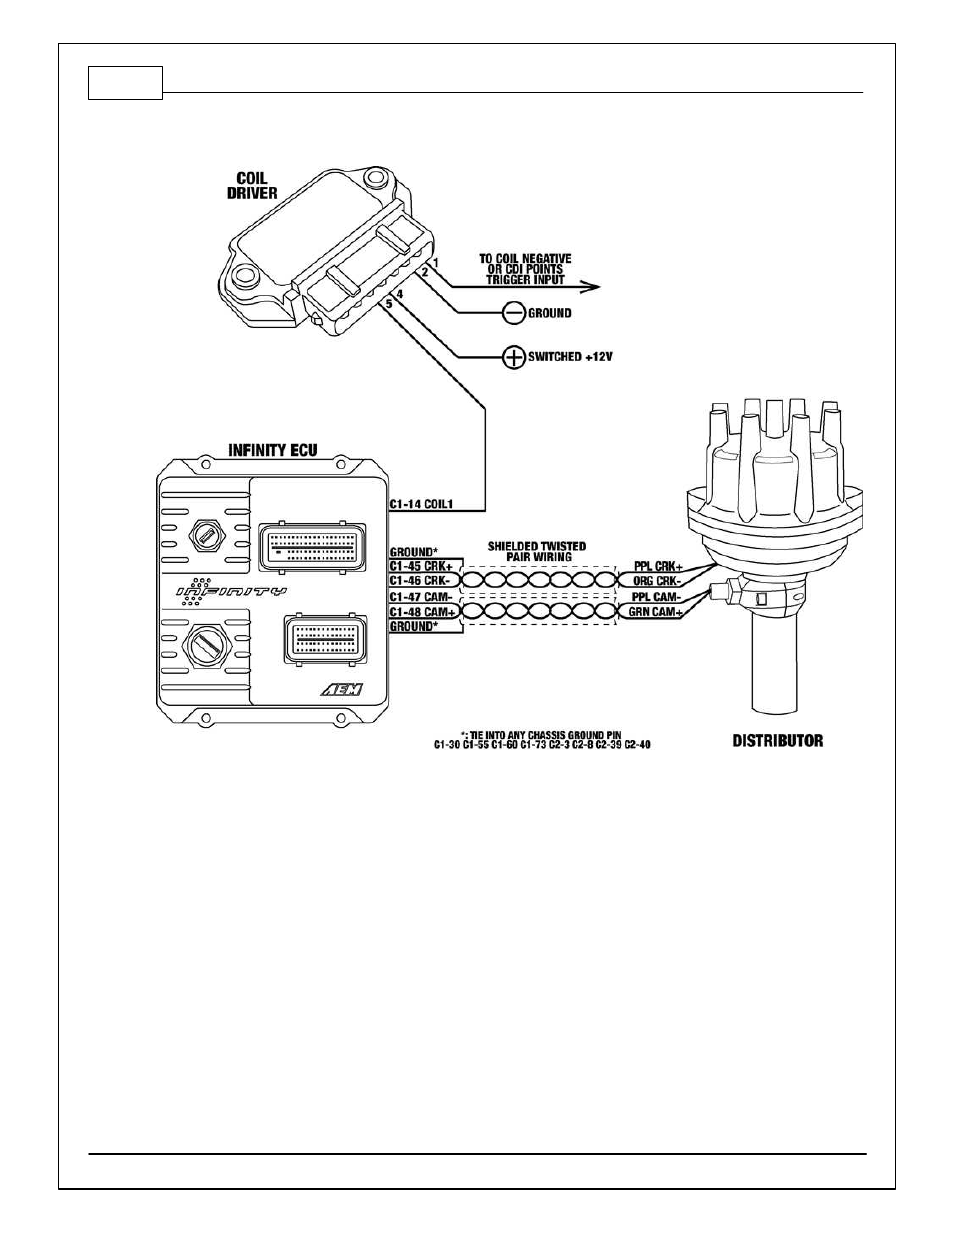 Aem Infinity 8 Wiring Diagram Schematics Mustang Fuse Diagrams Page 18 Msd 2345 Cam Sync Distributor Supported Applications Hydra Sport